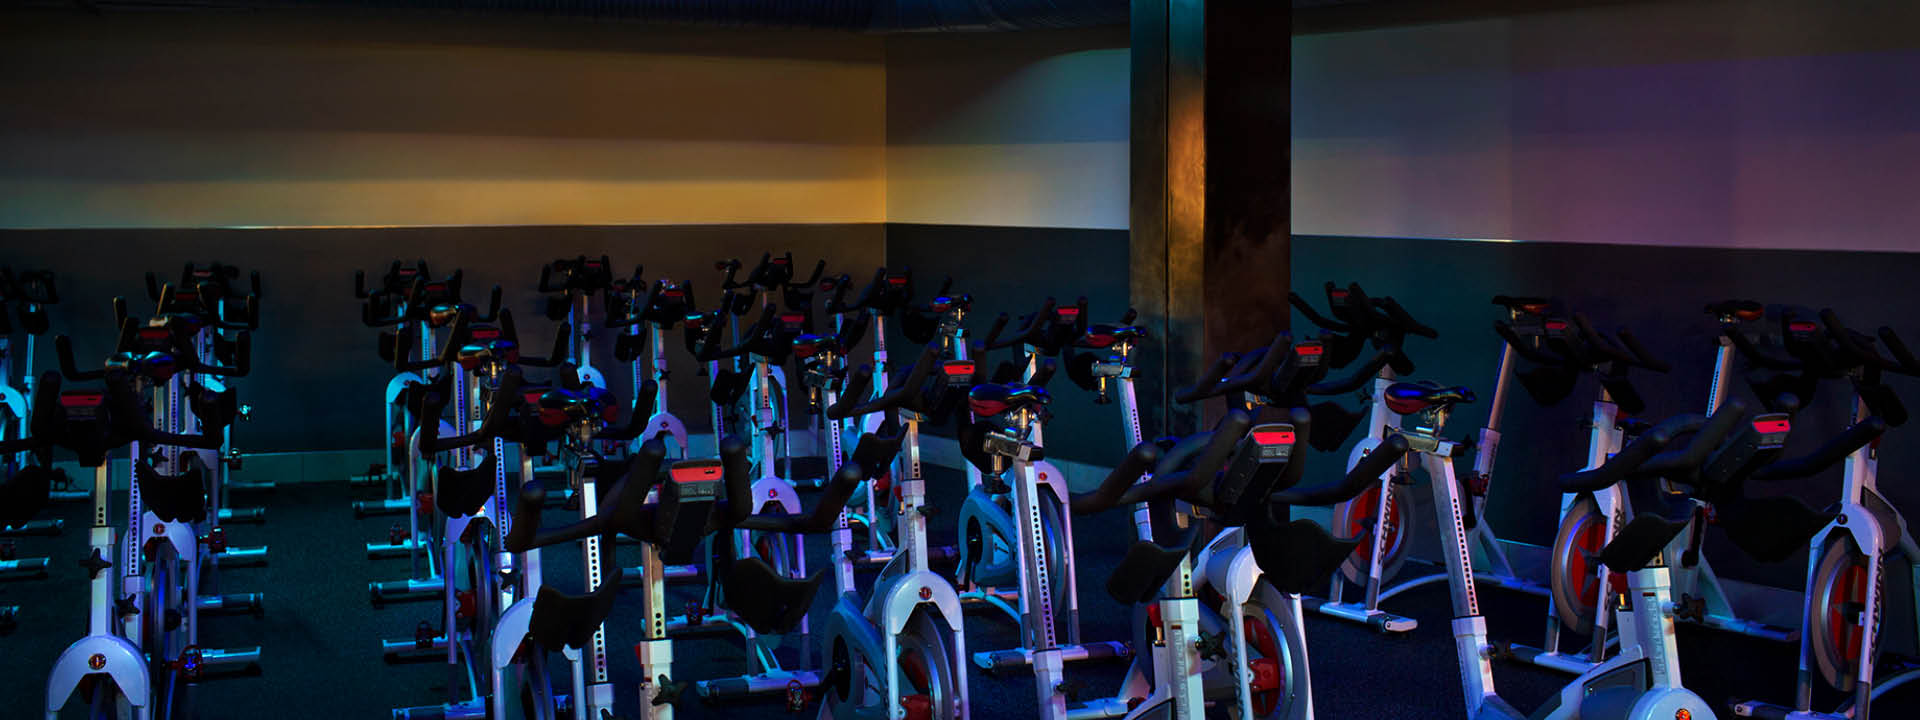 gyms in west hollywood: fitness clubs with yoga & pilates classes